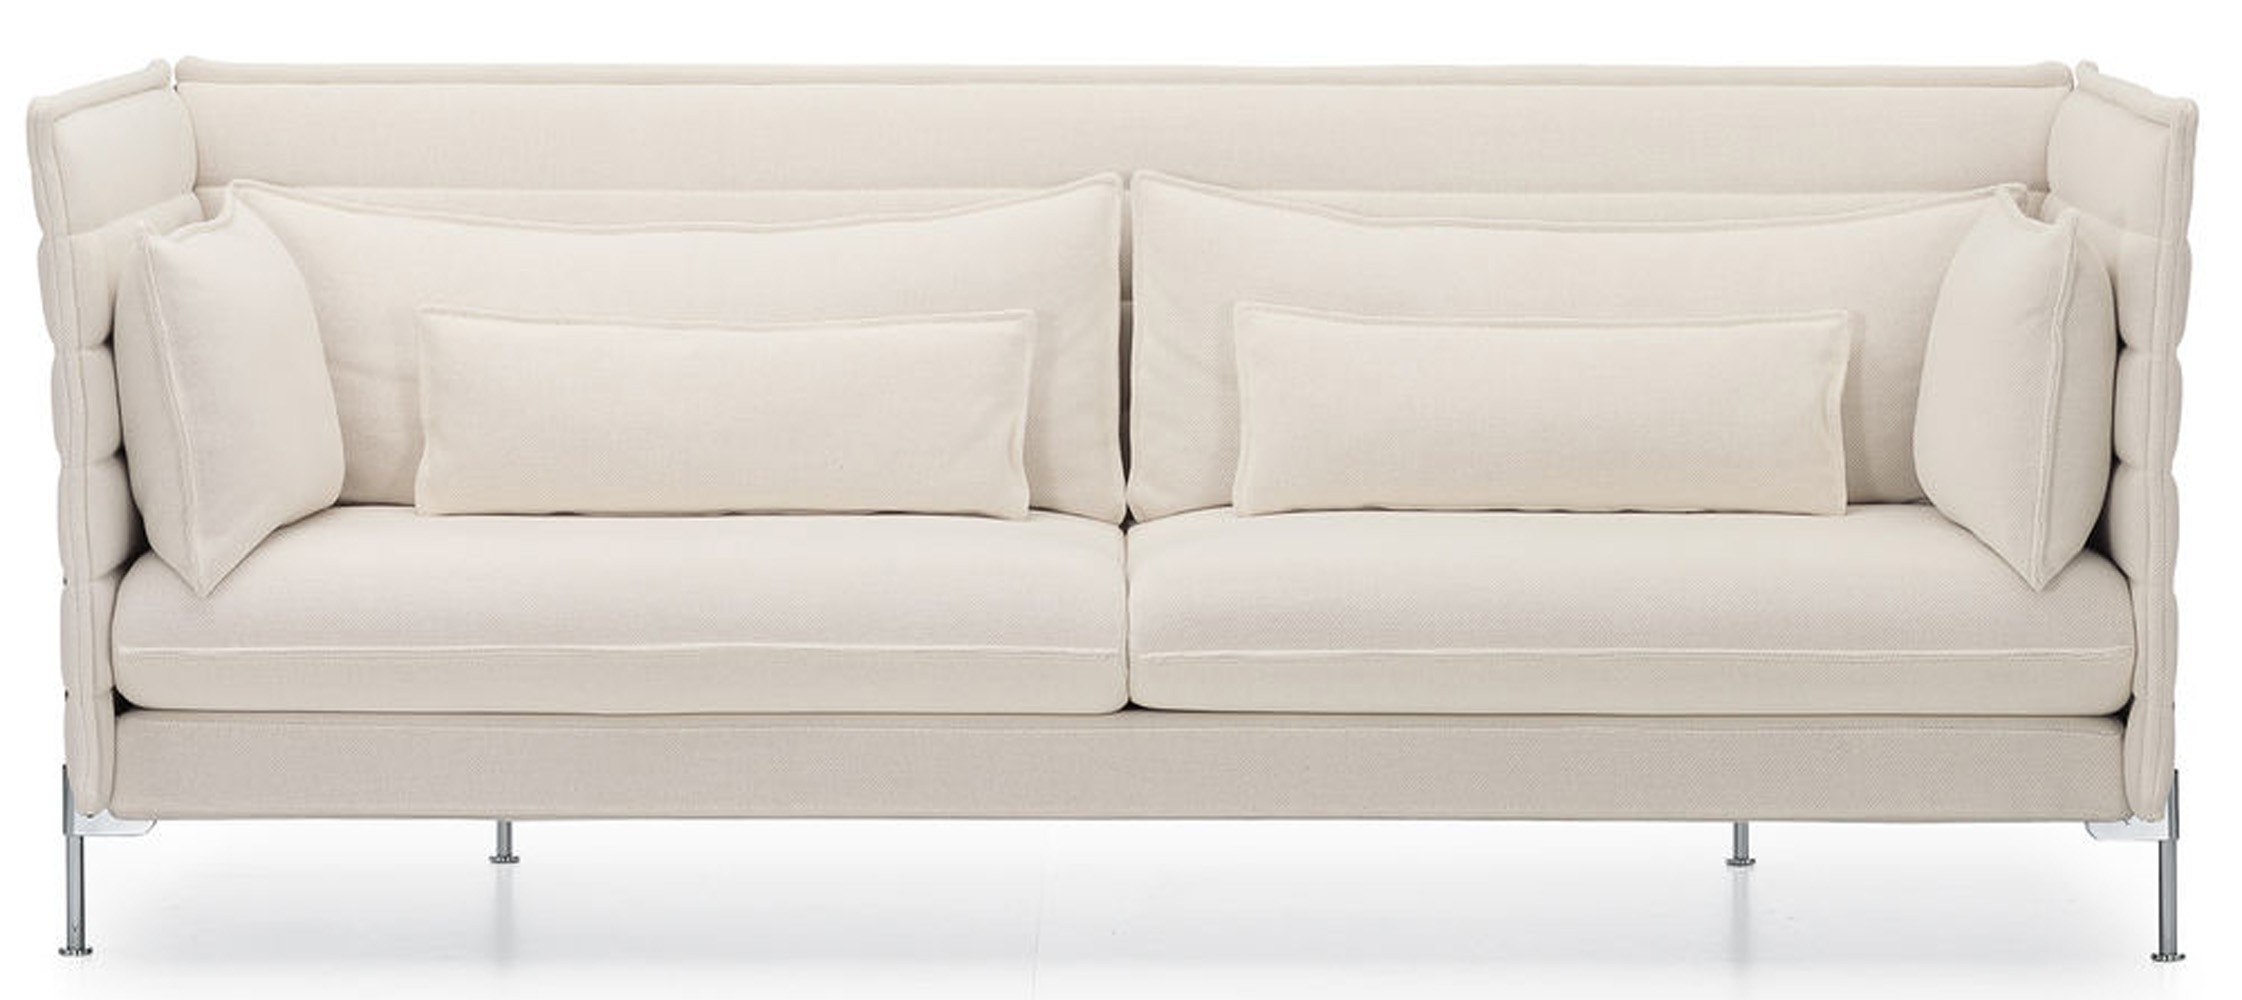 Vitra Alcove Three Seater Sofa